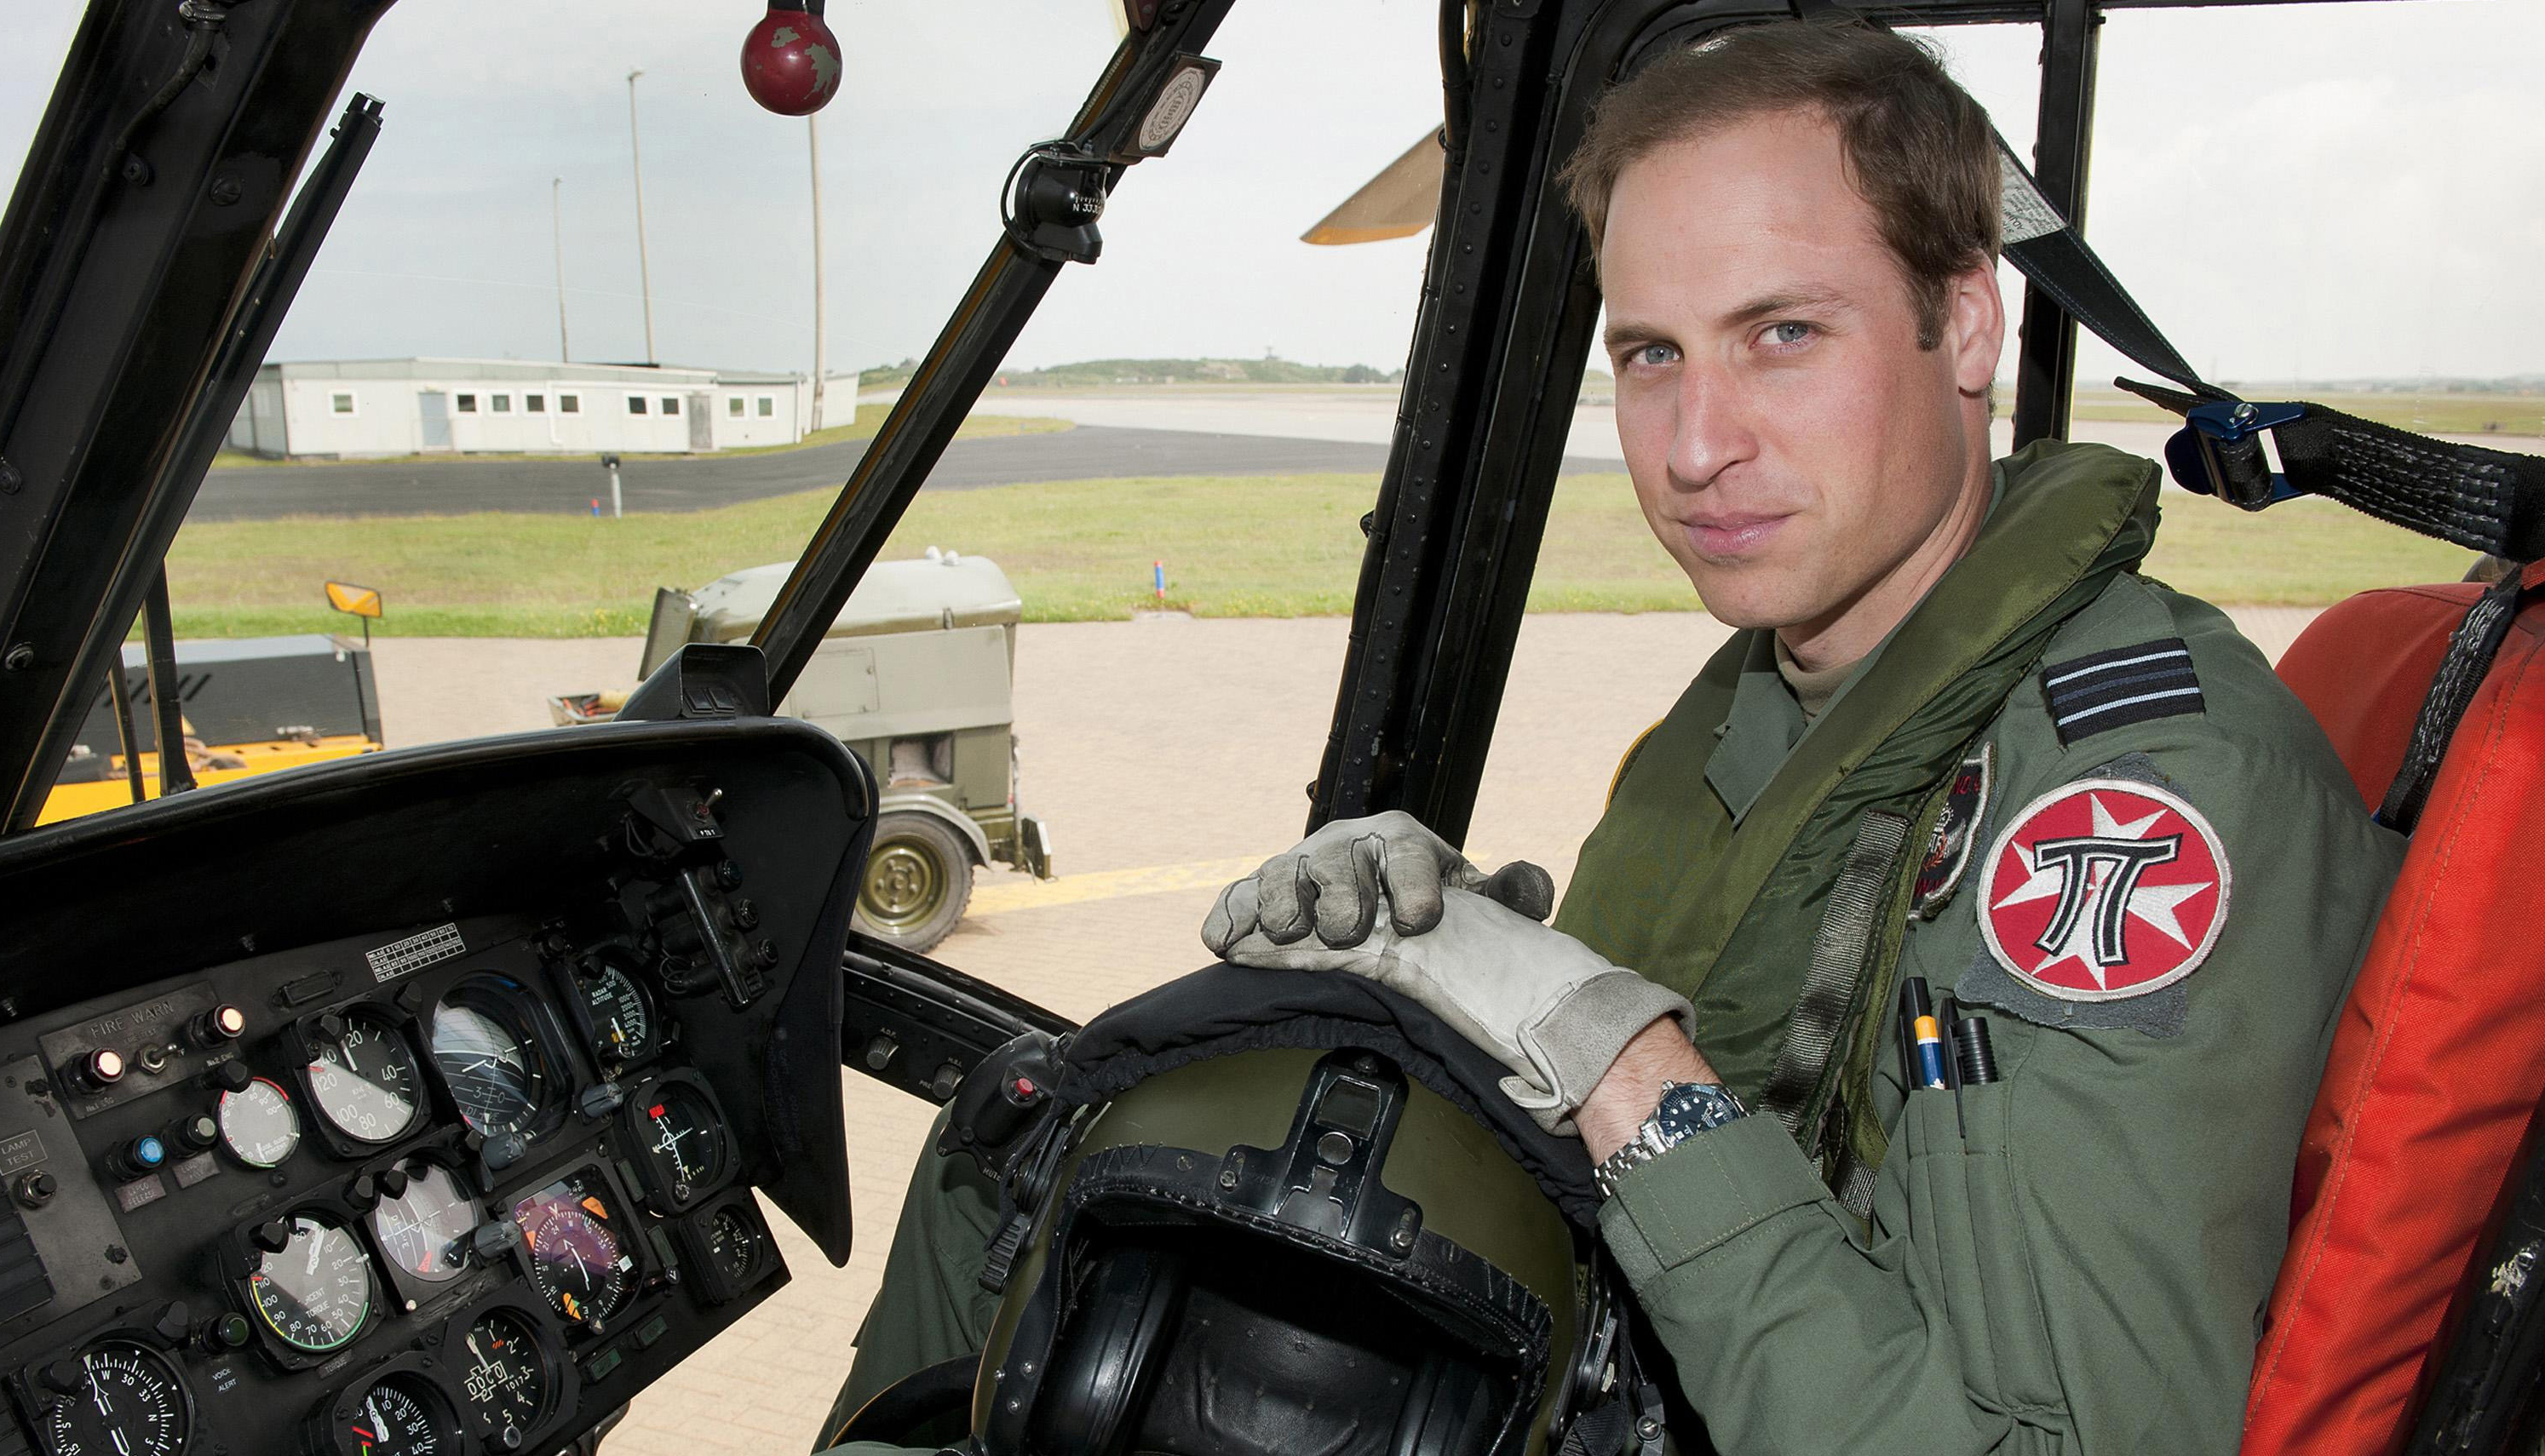 Prince William Is Leaving His Job as Air Ambulance Pilot